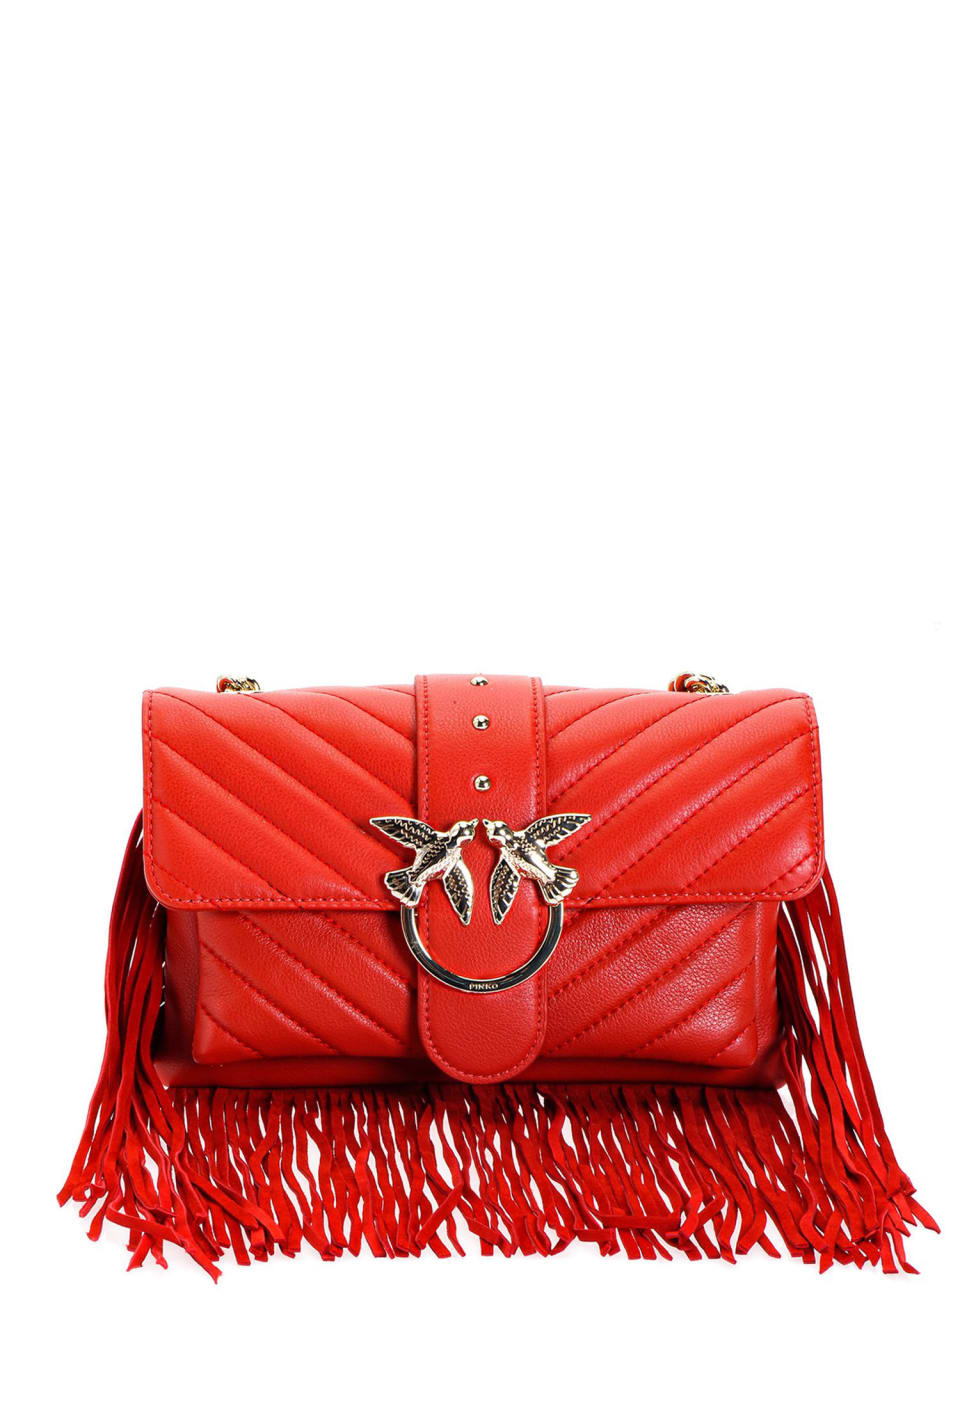 Mini Love Bag Soft Fringes in nappa leather